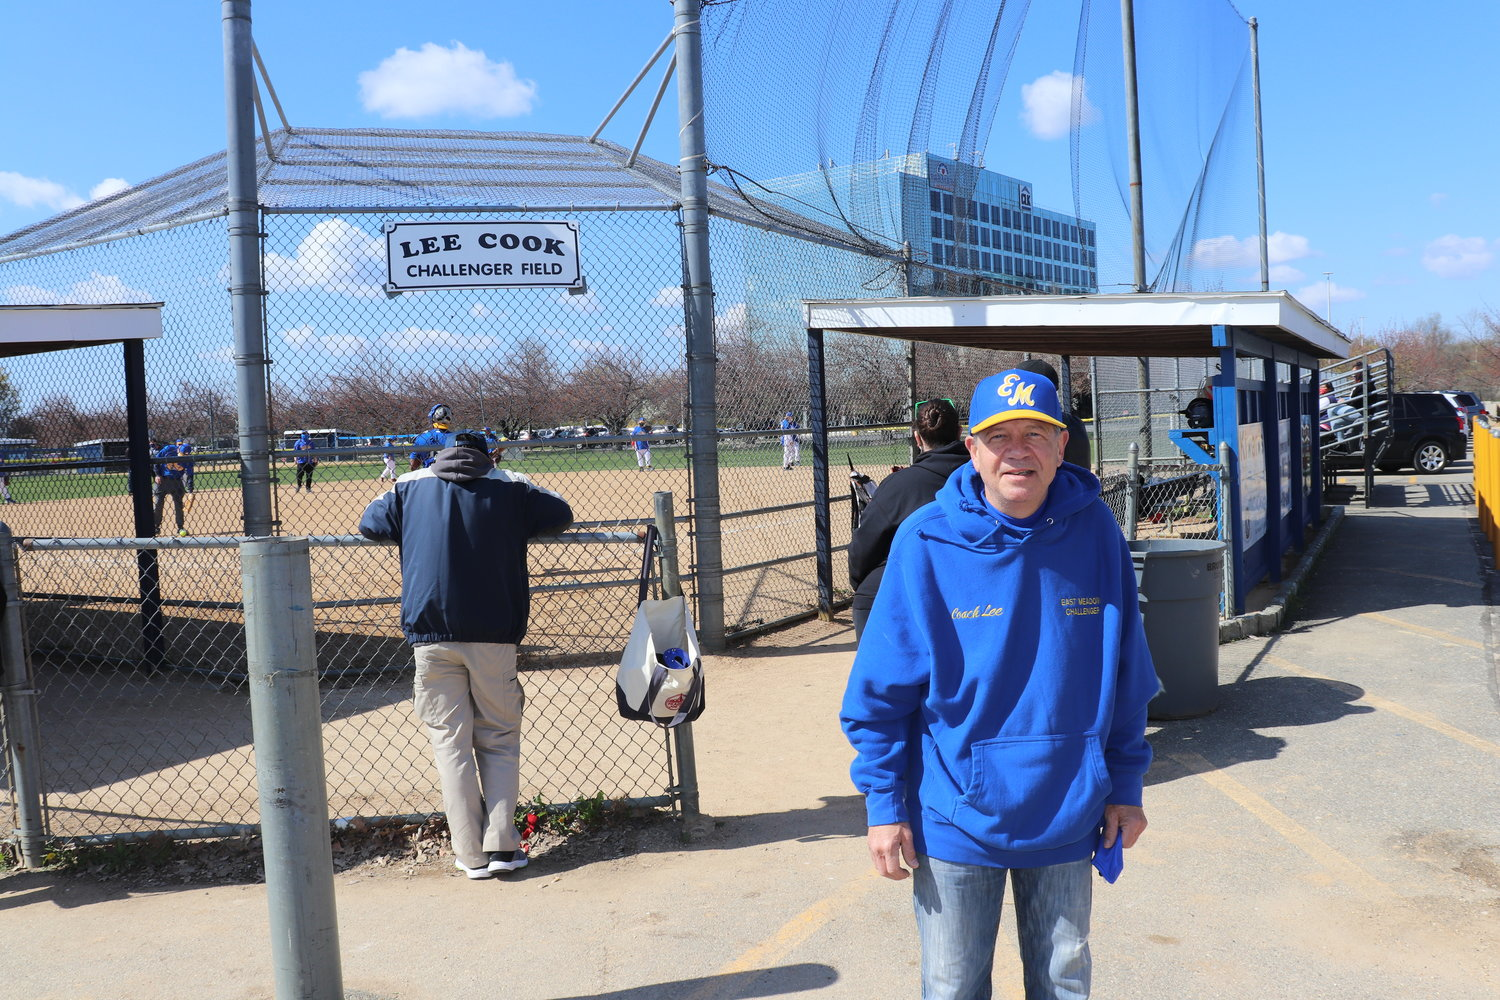 Lee Cook, founder and director of the Challenger League, right, at a field on Merrick Avenue that was named after him.